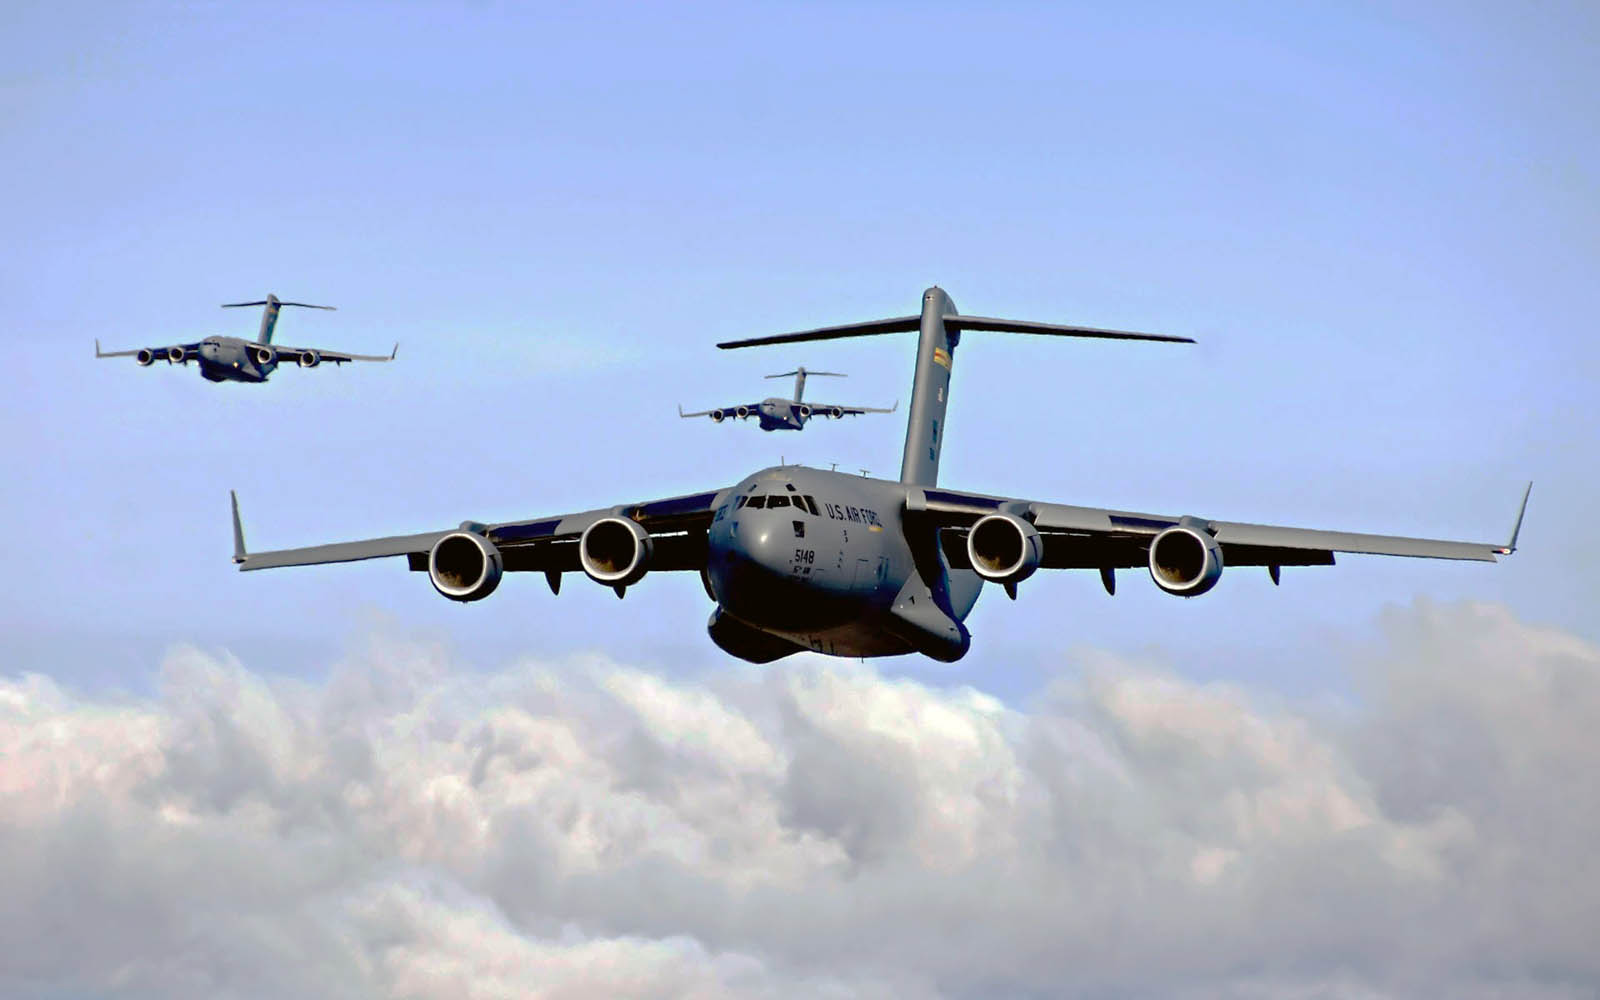 Wallpapers C 17 Globemaster Iii Aircraft Wallpapers